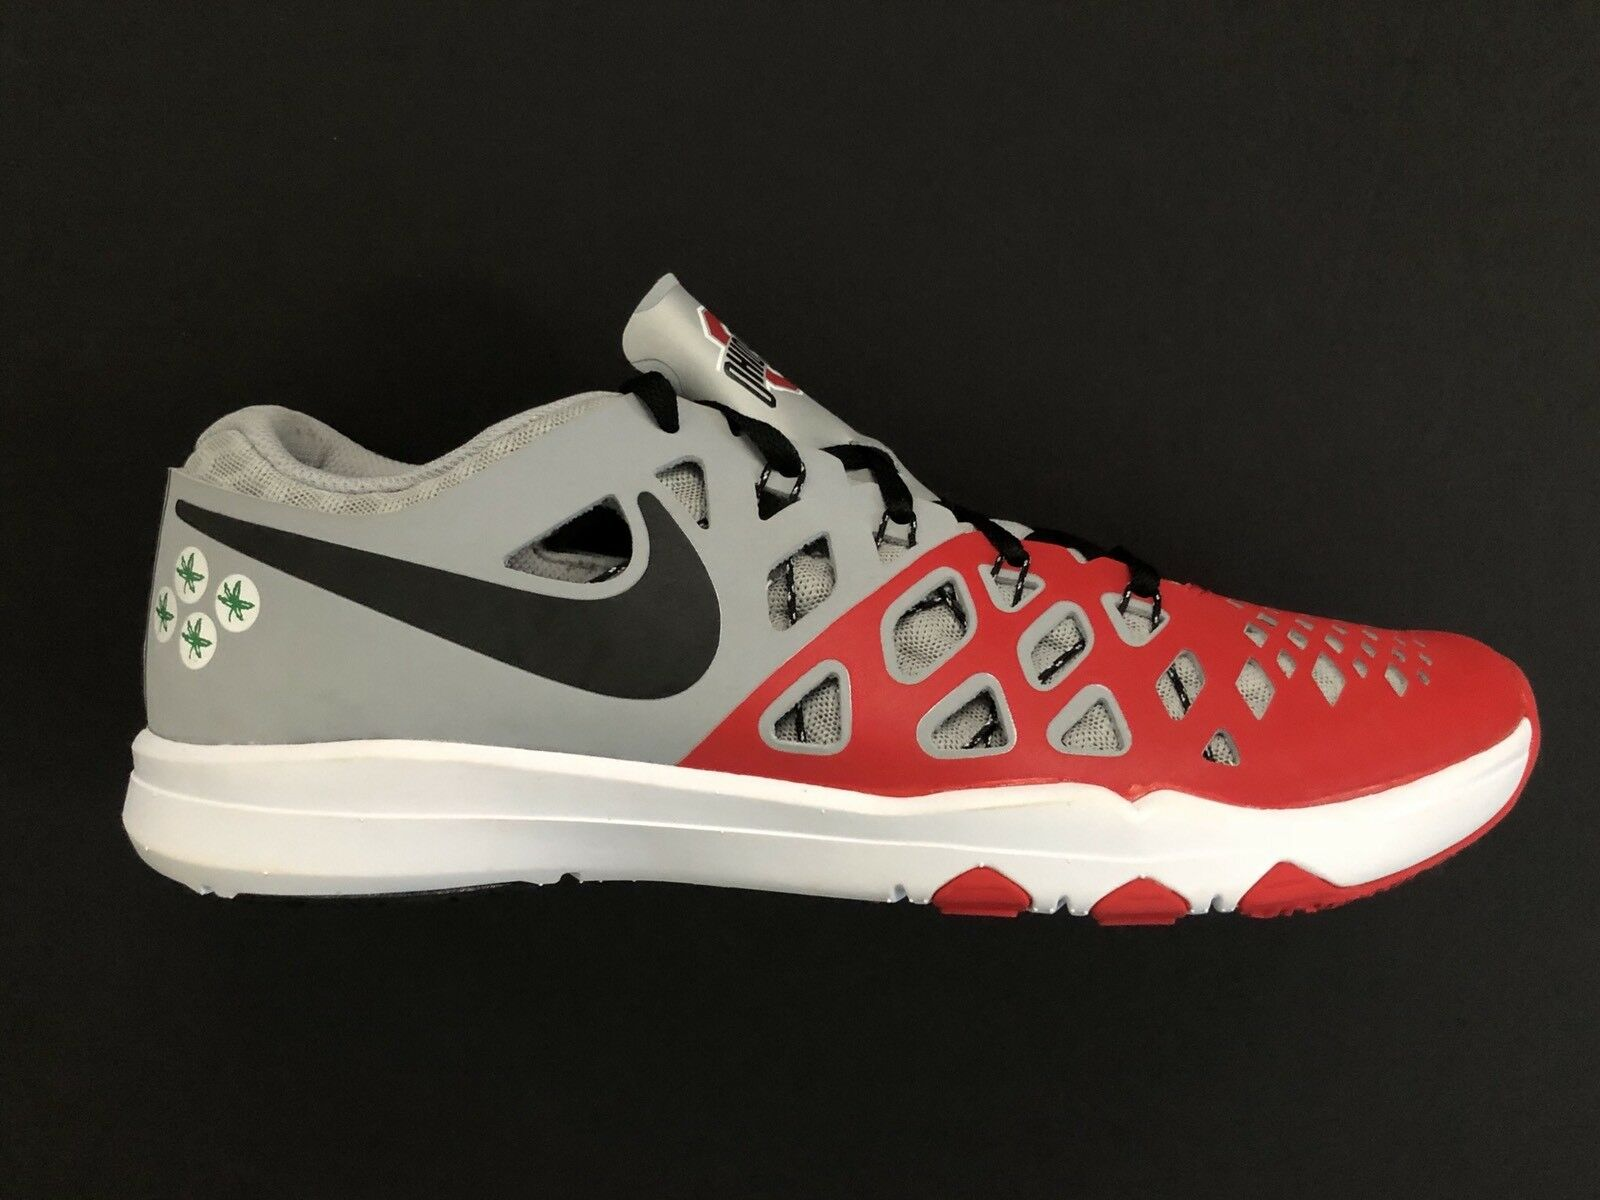 Nike Ohio State Buckeyes Buckeyes State Train Speed 4 Amp College Shoes 844102-603 Size 9.5 ad438d